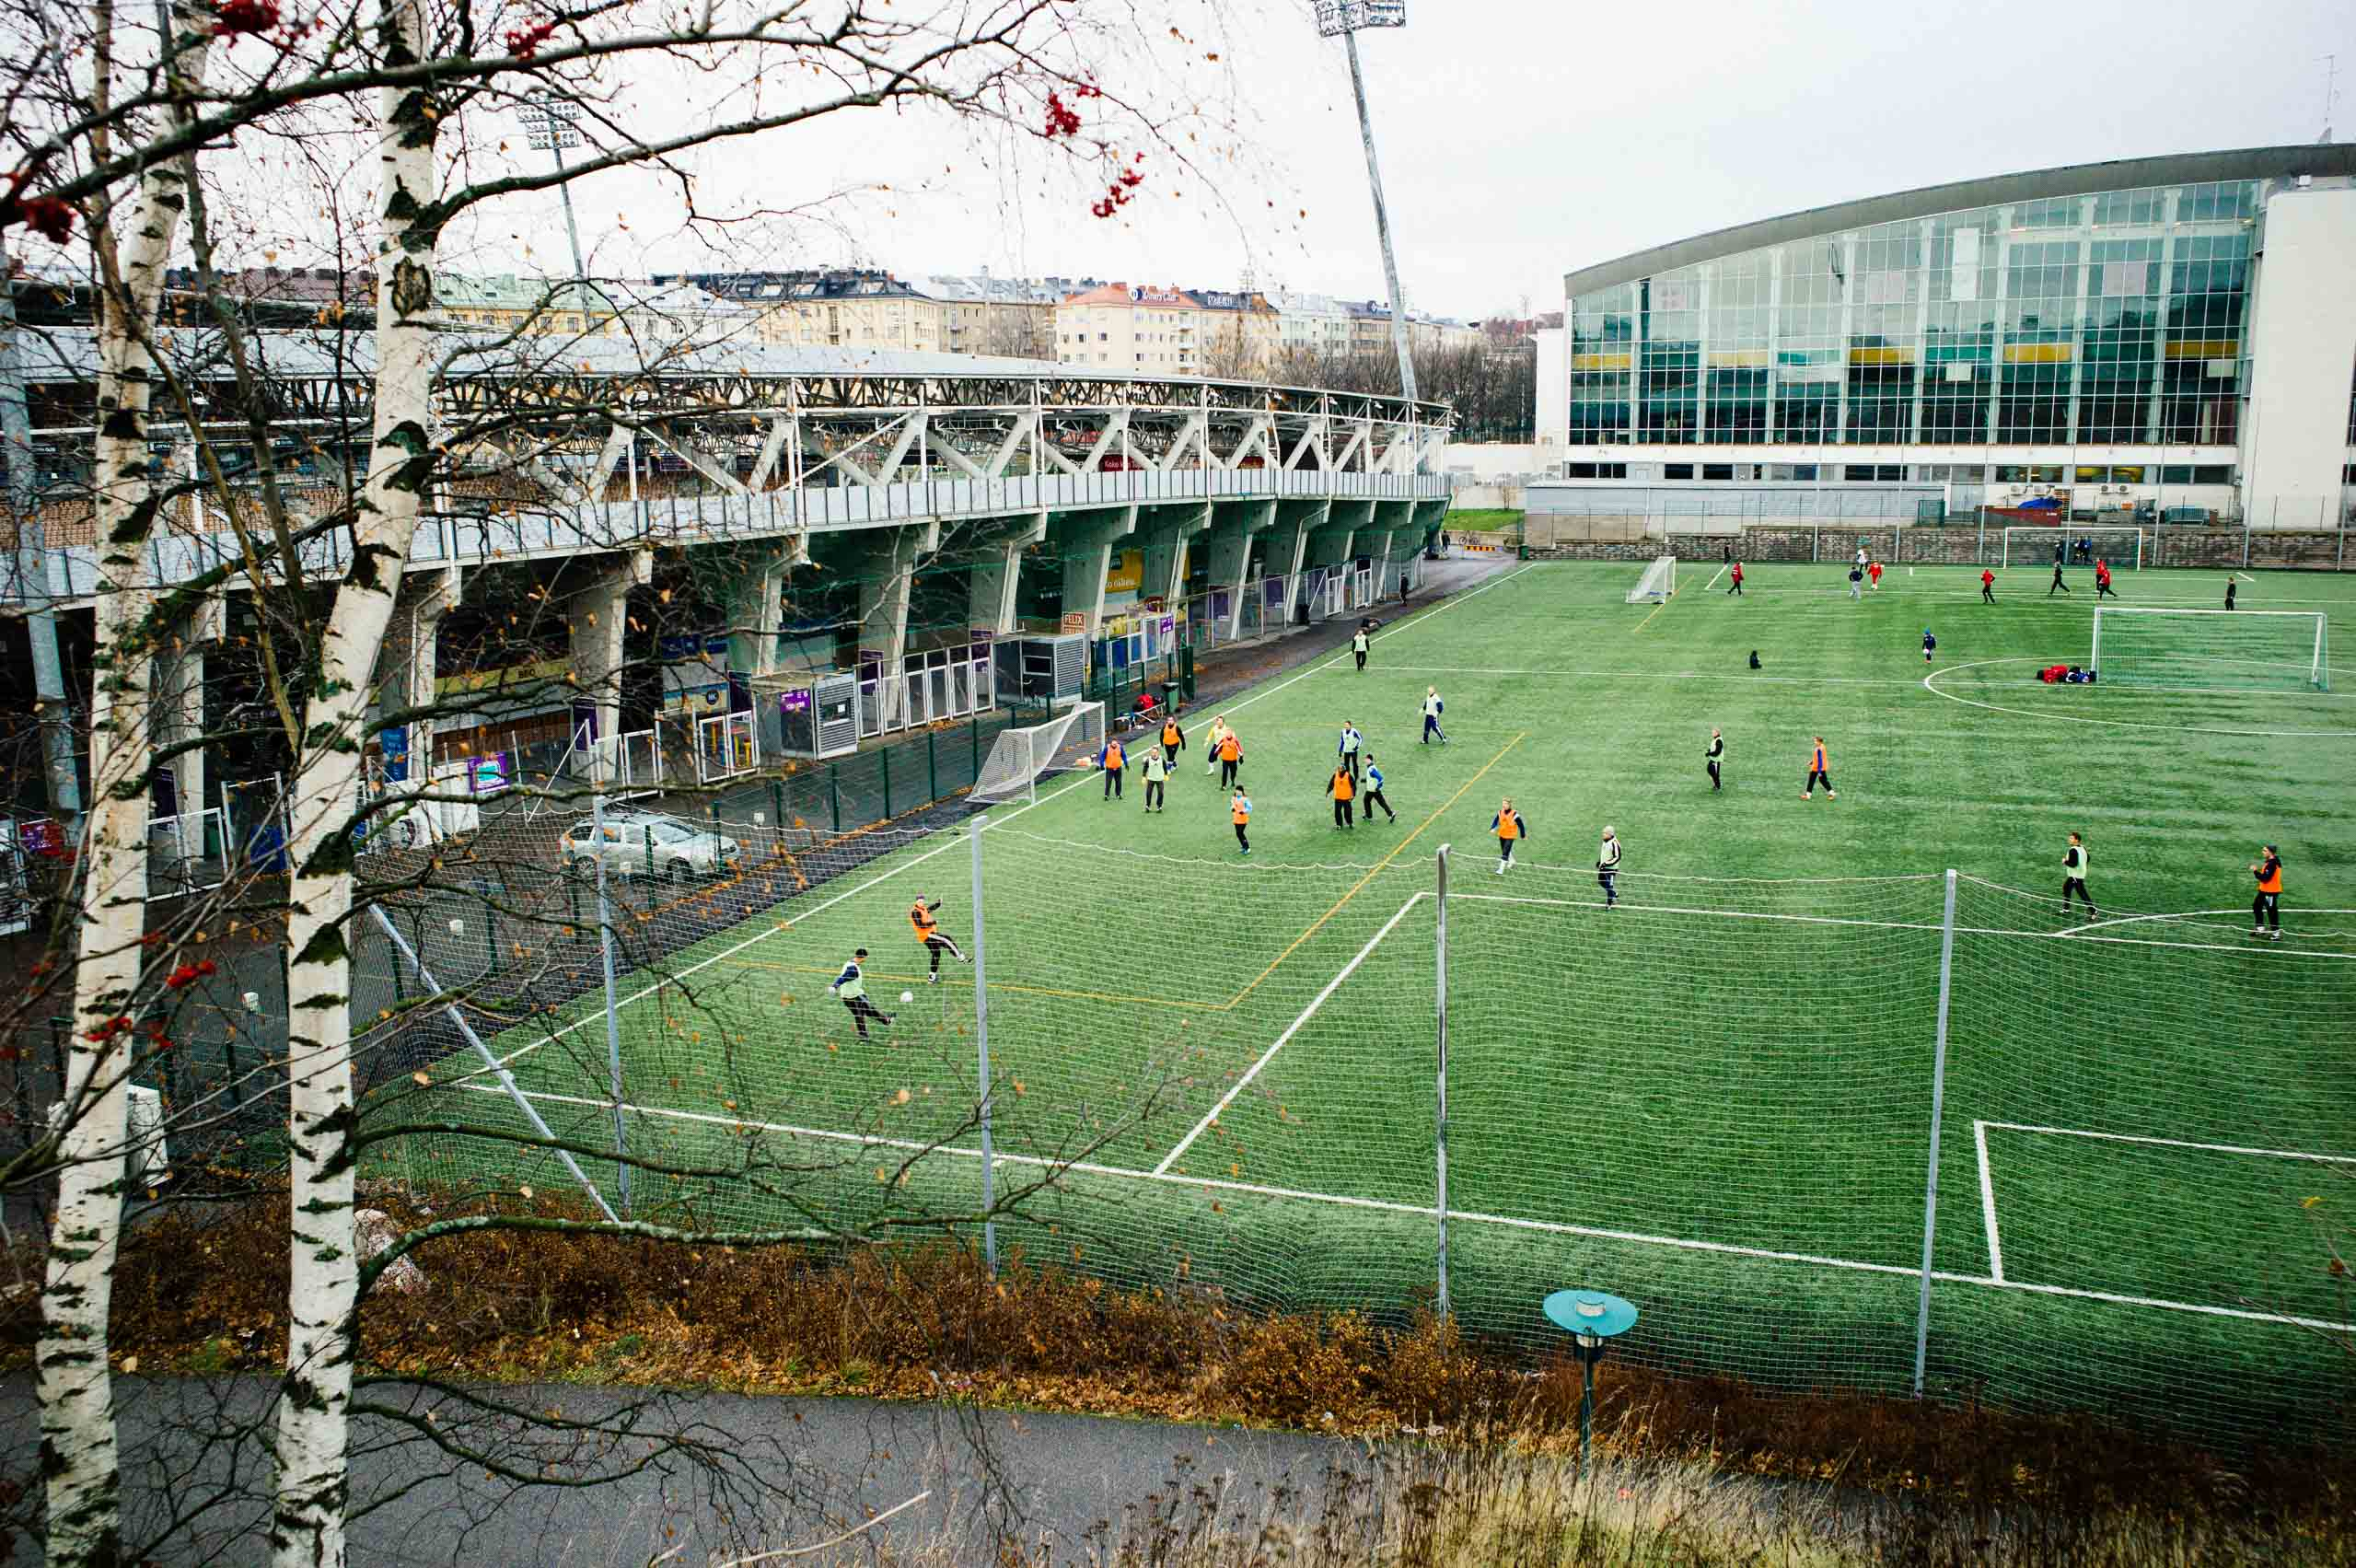 A soccer field as seen from the Olympic stadium in Helsinki, host of the 1952 Summer Olympics, photographed in November 2012.